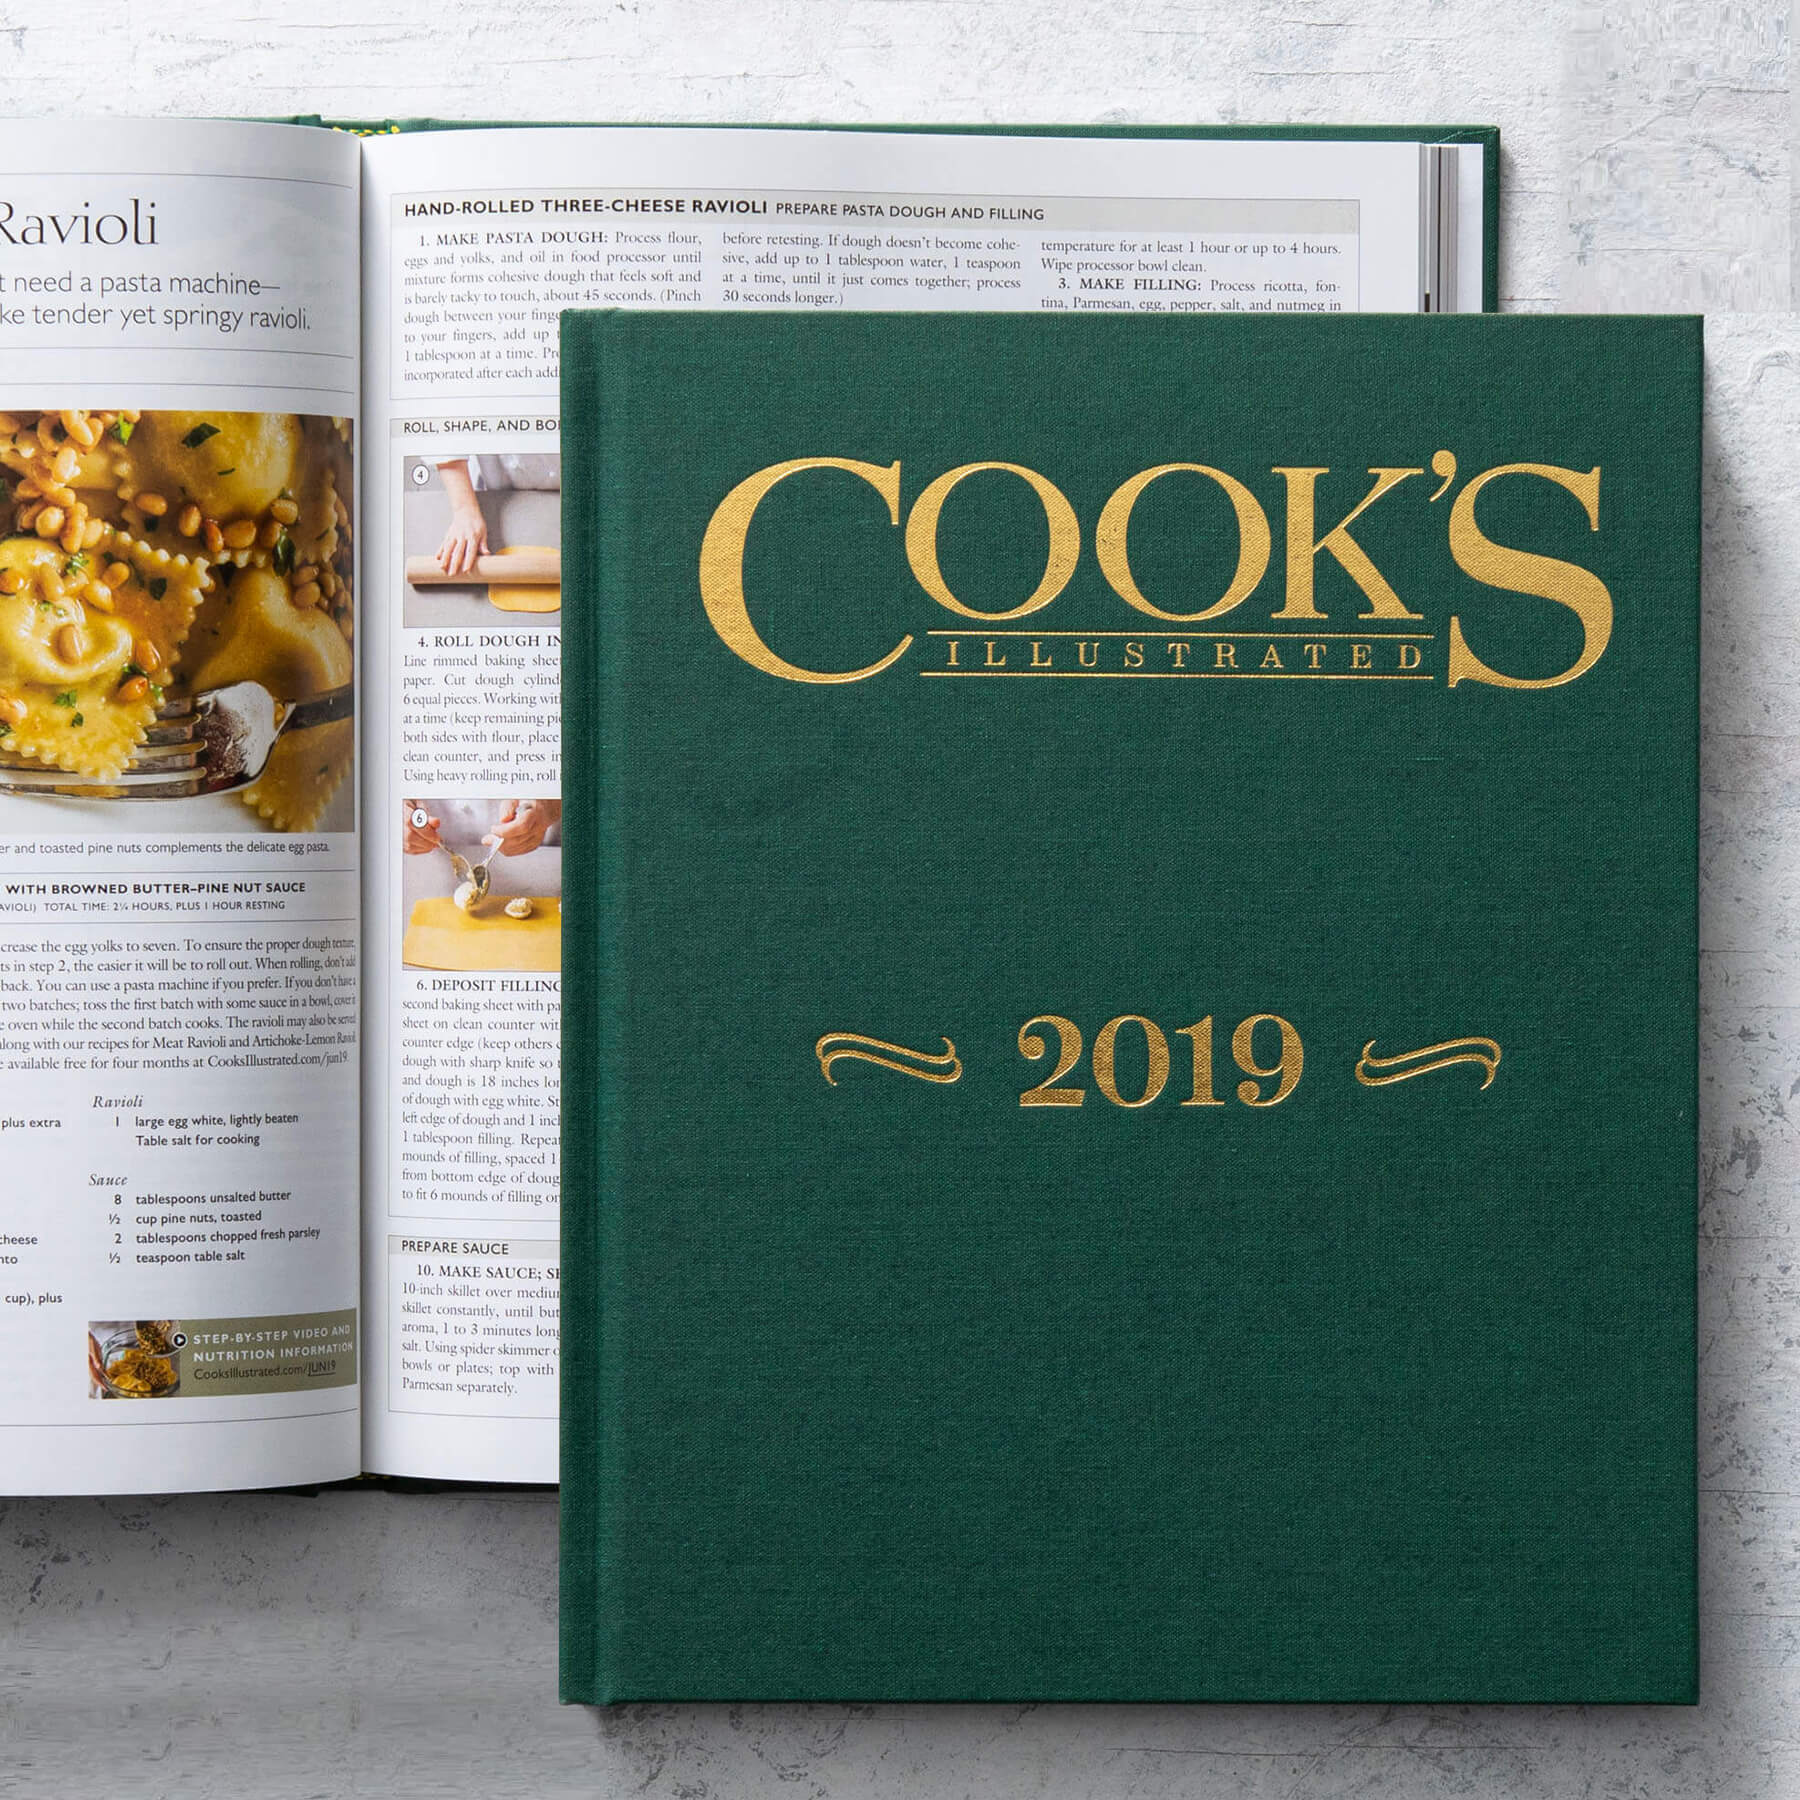 Cook's Illustrated 2019 Annual